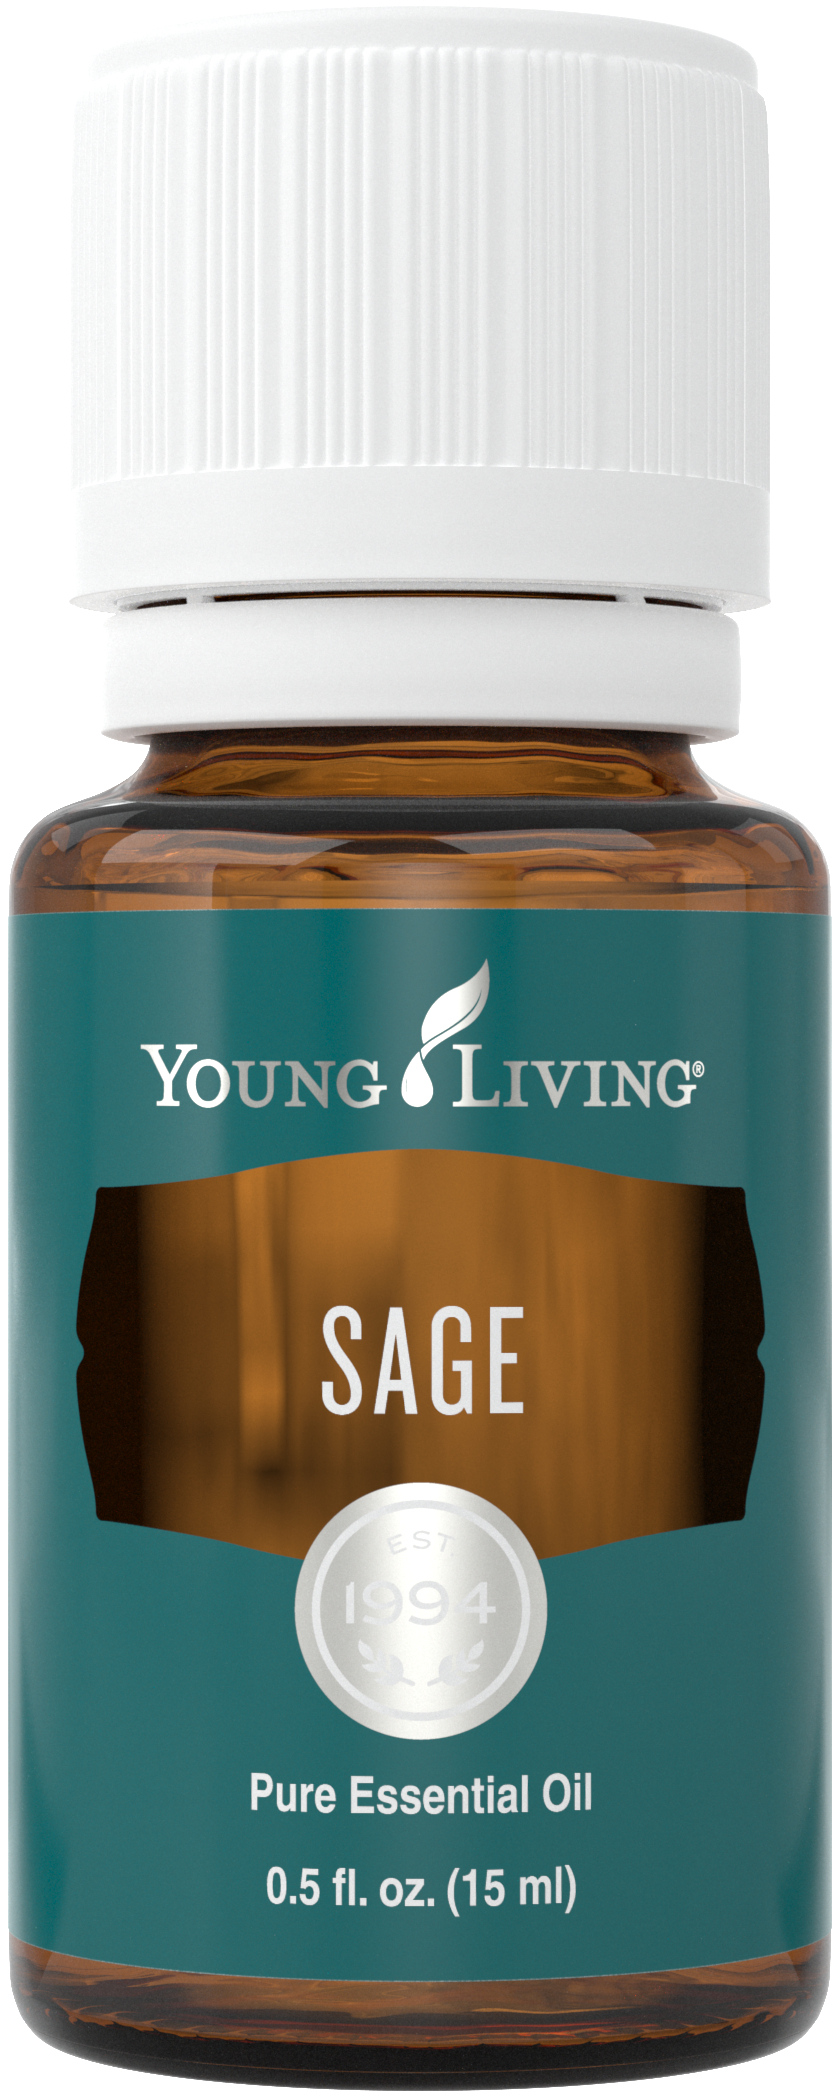 Sage Essential Oil - Young Living Essential Oils